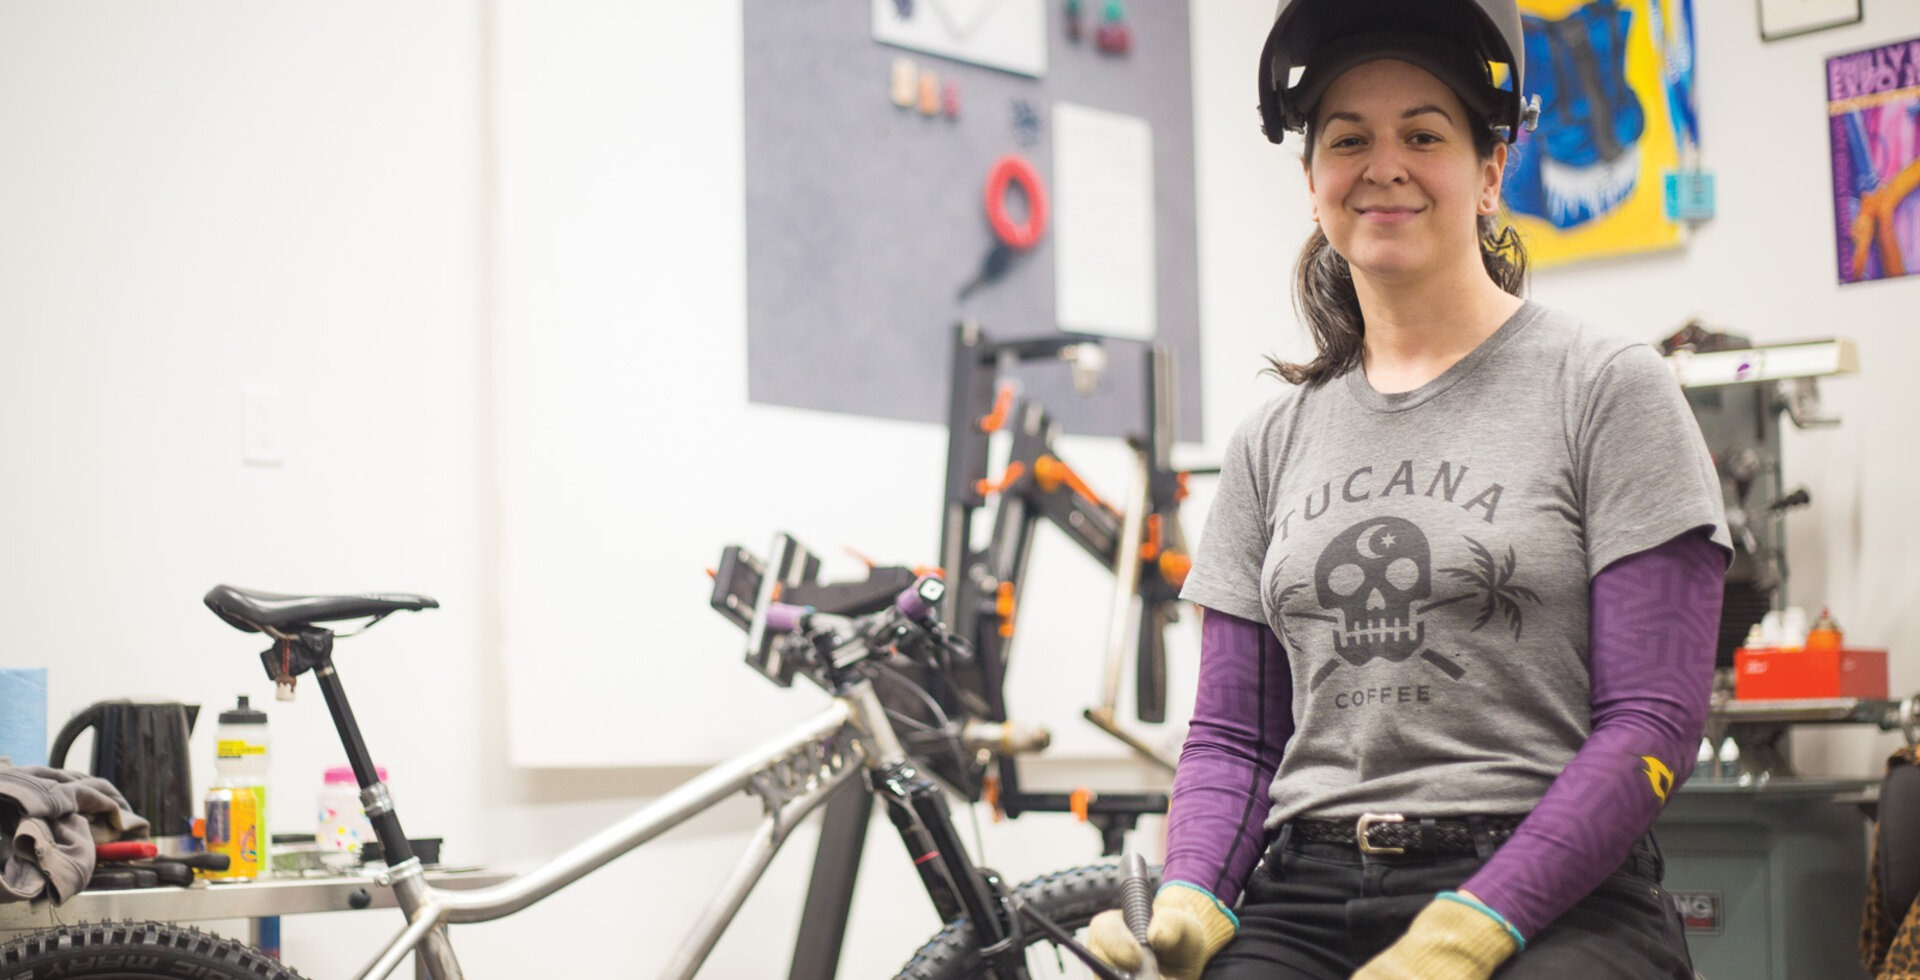 Danielle Schön in her Squamish, BC shop with the bike she built for the 2019 Philly Bike Expo behind her. The hardtail mullet-style bike is the perfect amalgamation of Schön's artistic skills and Squamish's burly riding style.